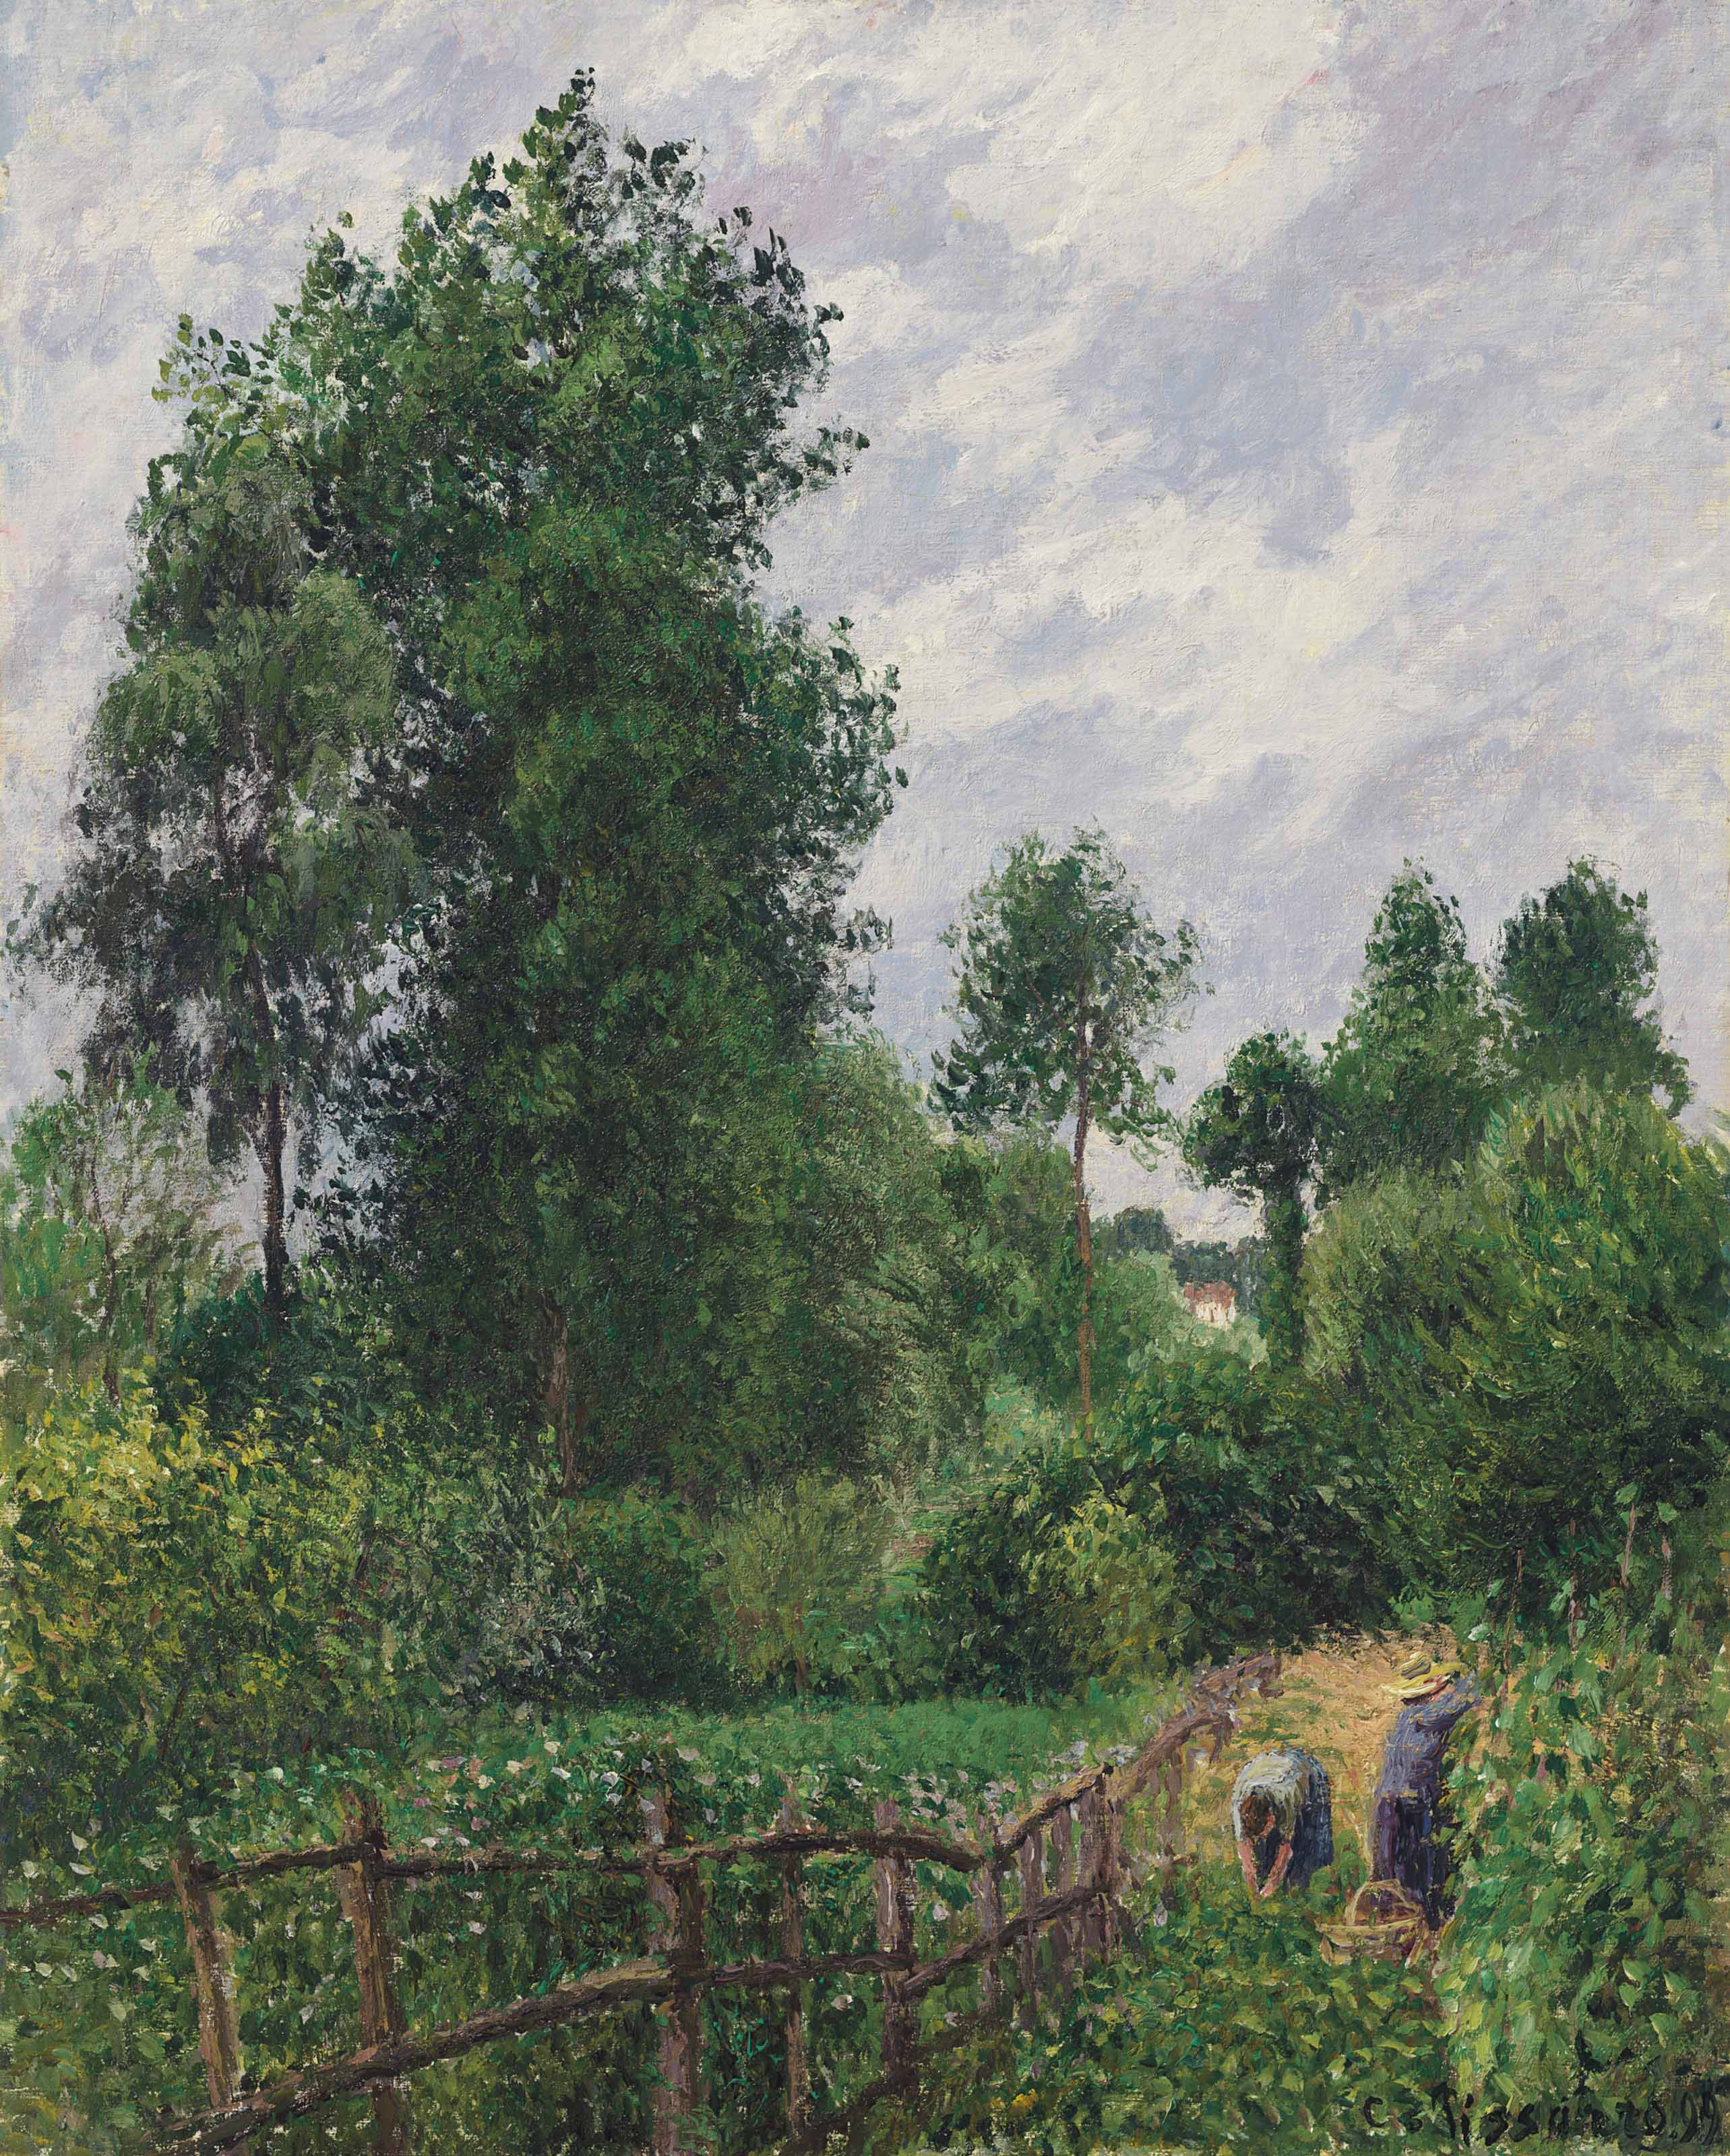 Camille pissarro 1830 1903 paysage avec peupliers for Camille pissarro oeuvre